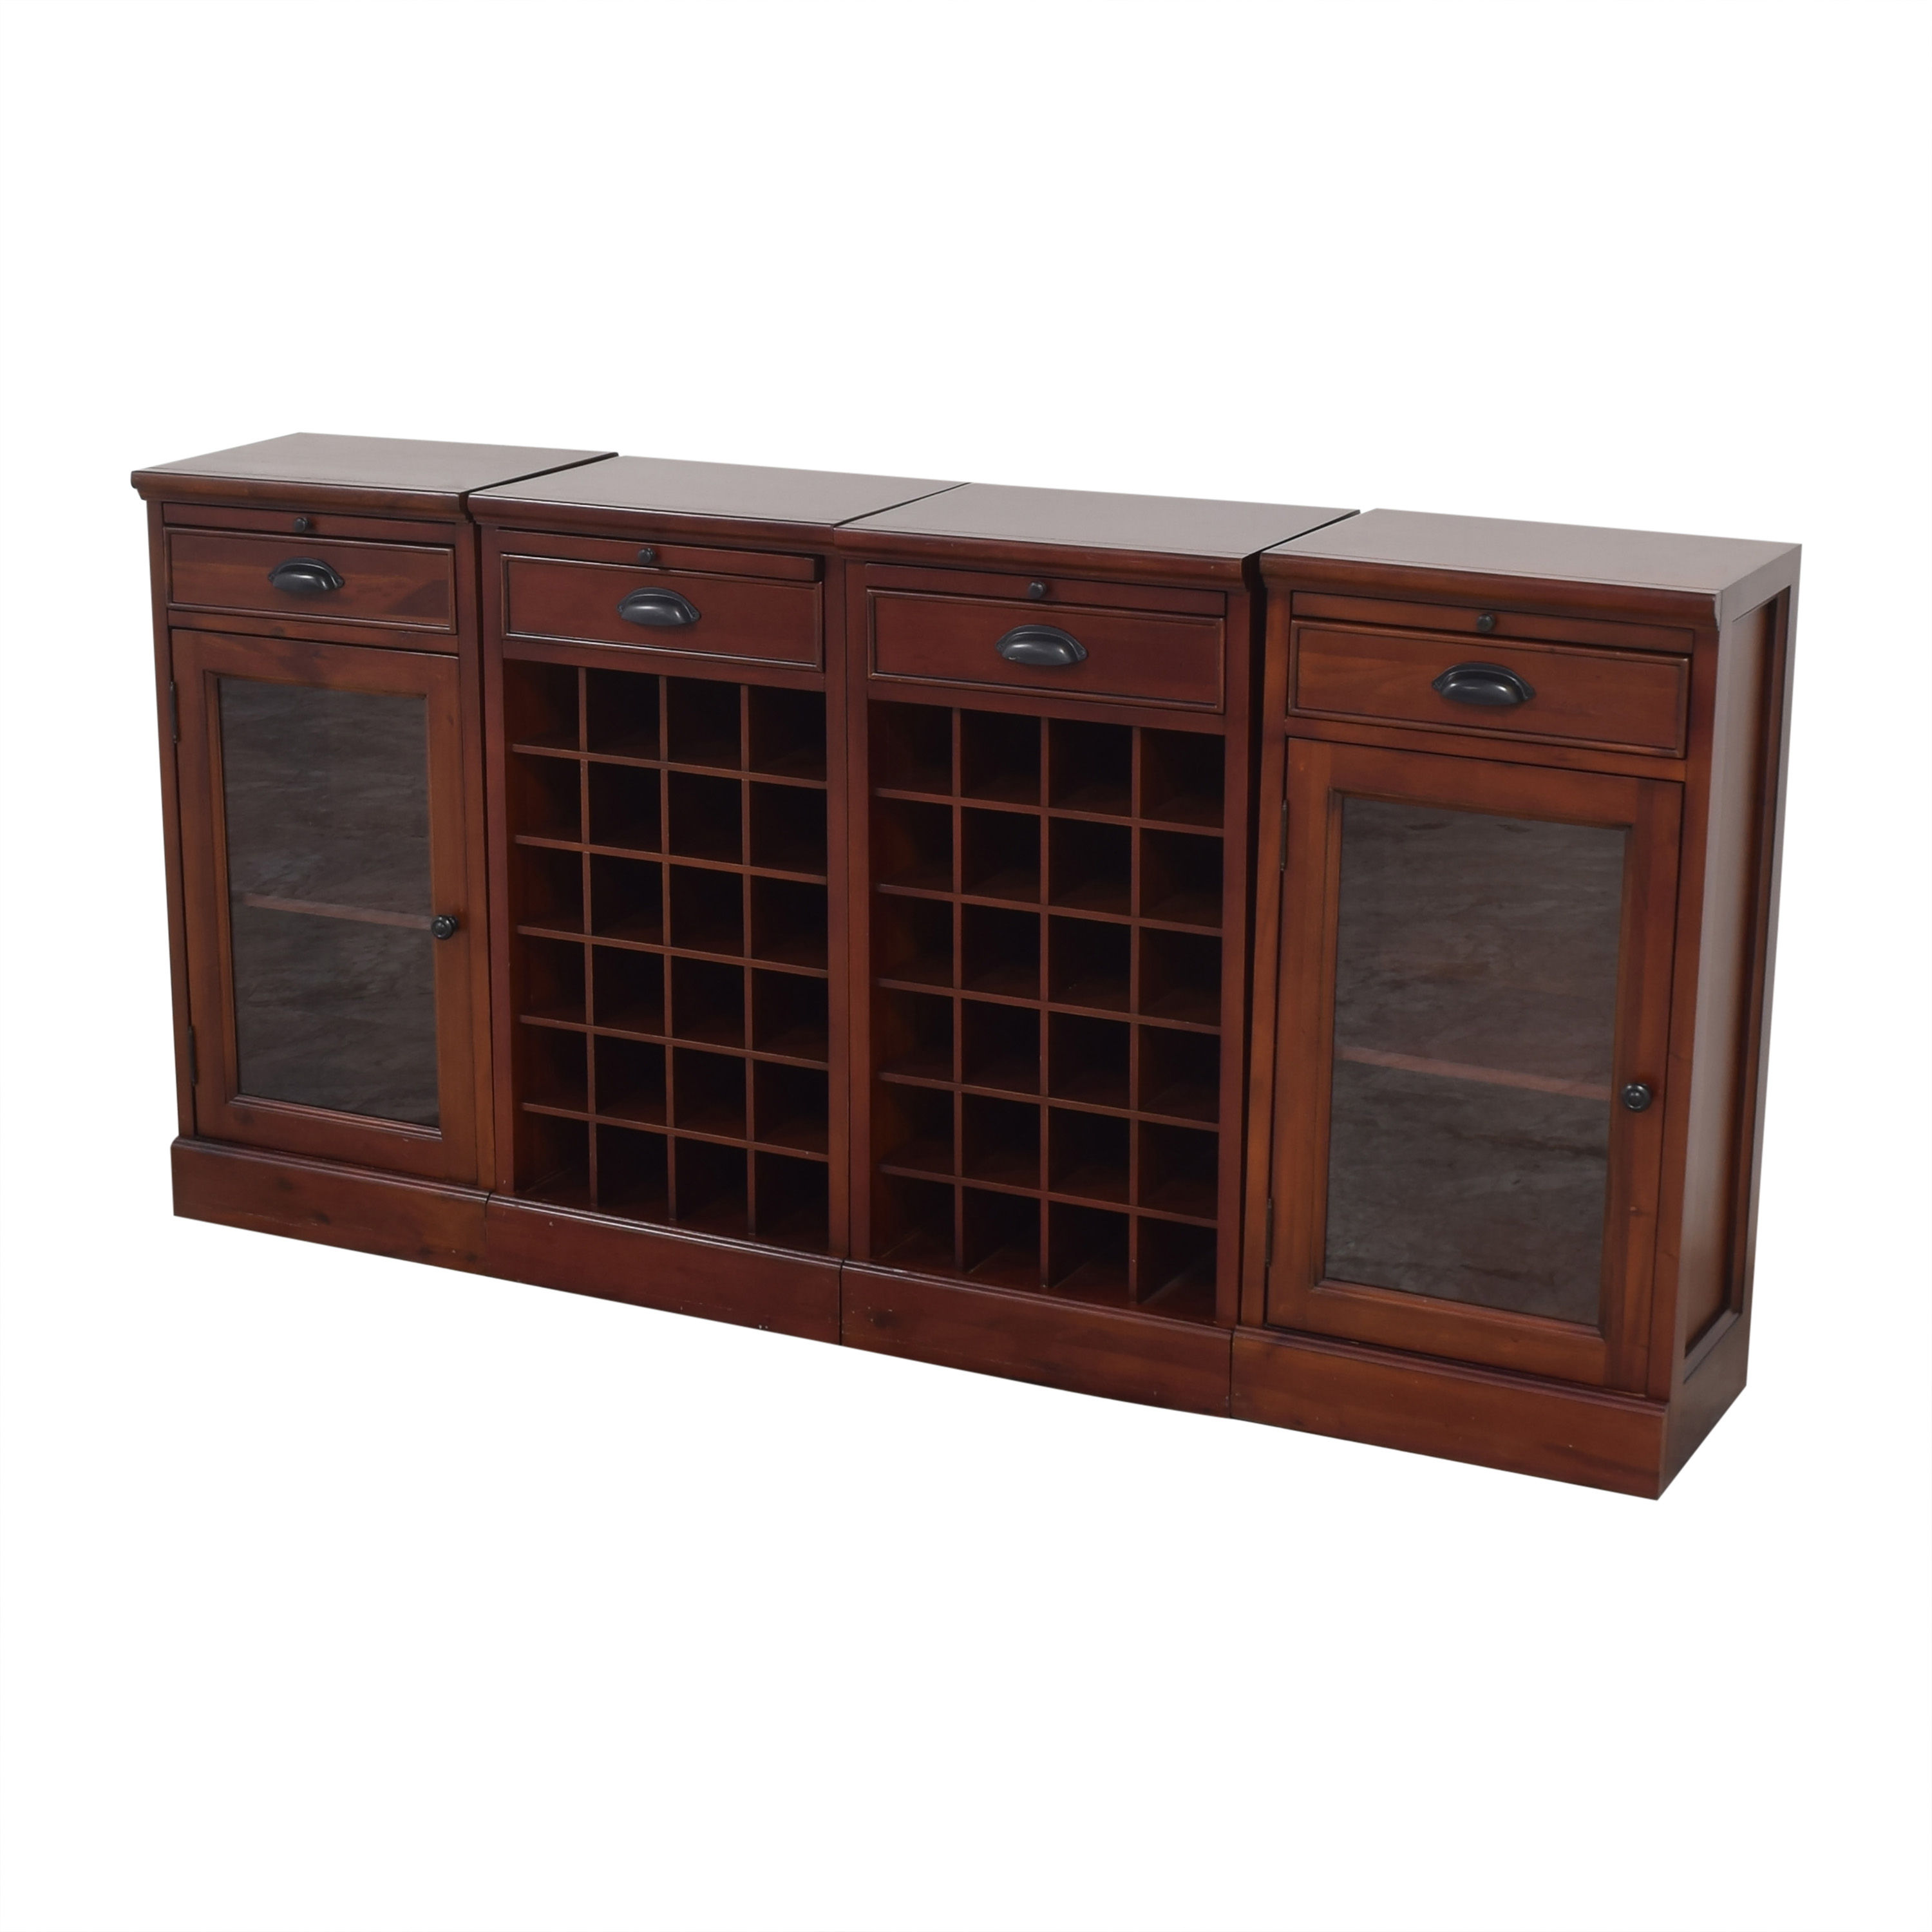 Pottery Barn Pottery Barn Modular Buffet with Double Wine Grid coupon